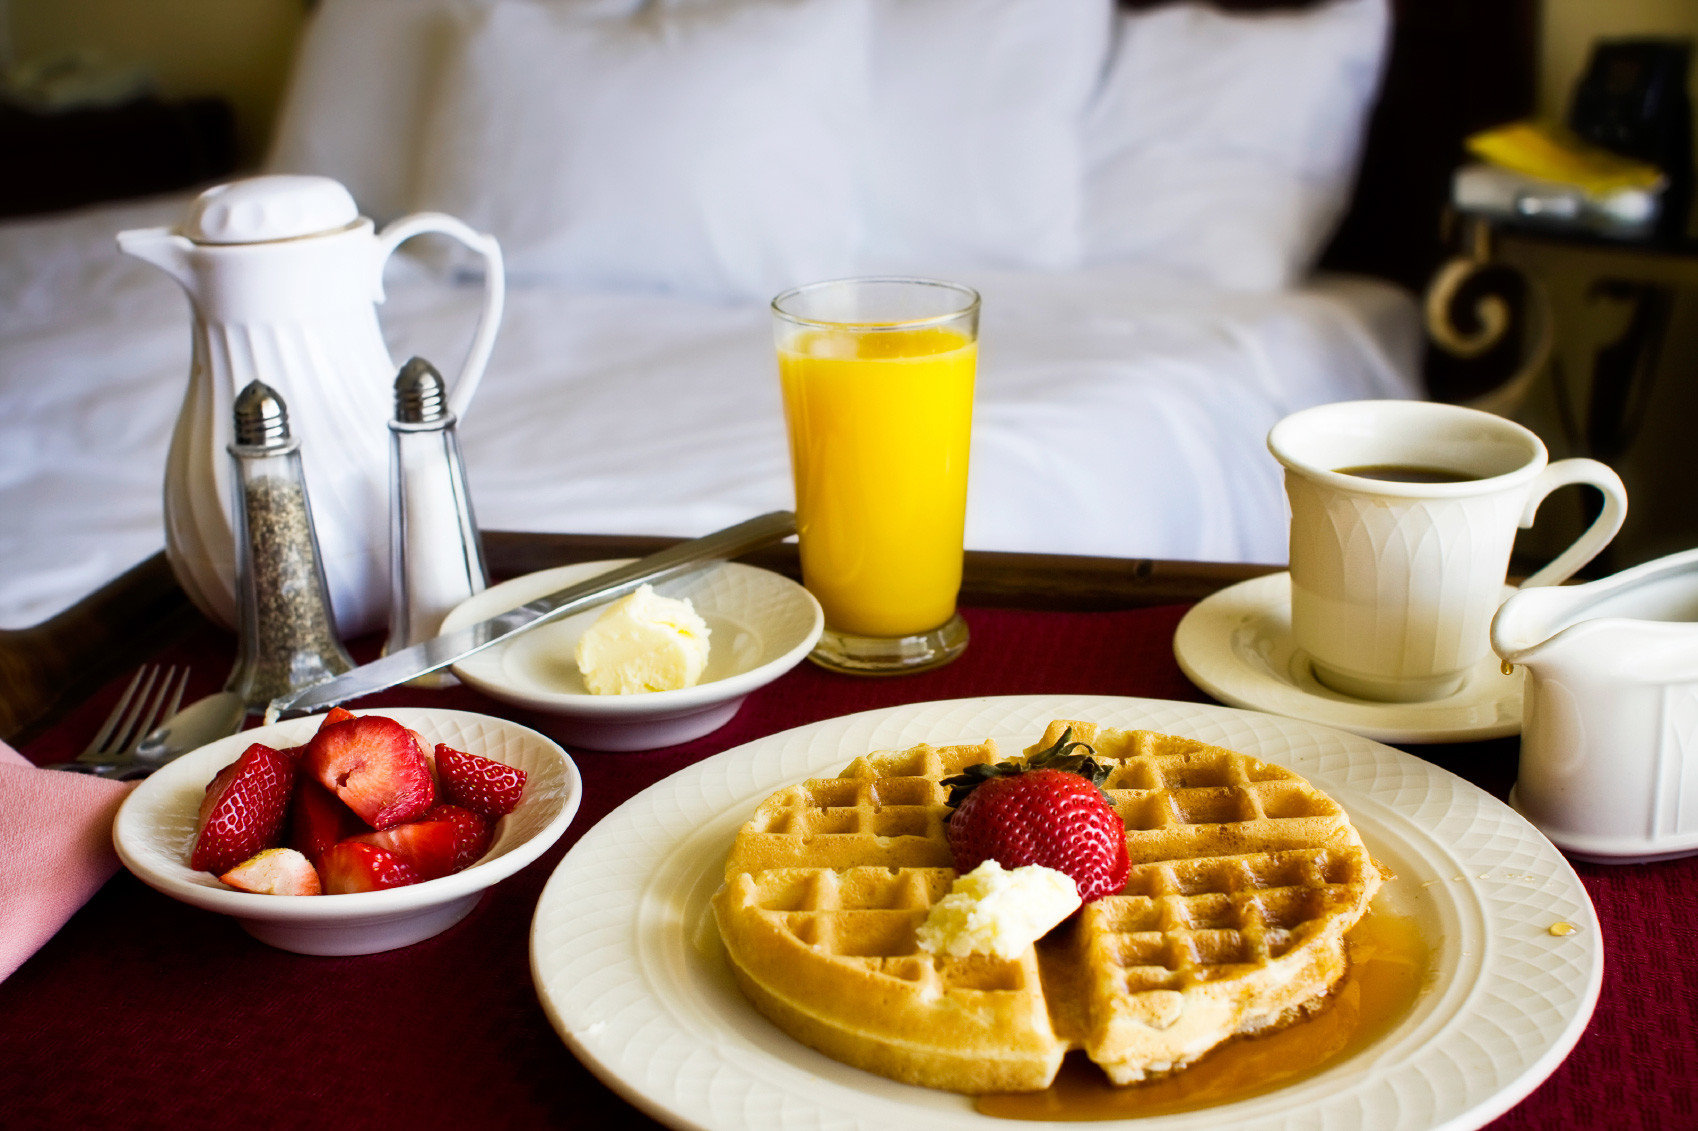 Classic Dining Drink Eat Resort cup coffee plate food breakfast brunch fruit lunch